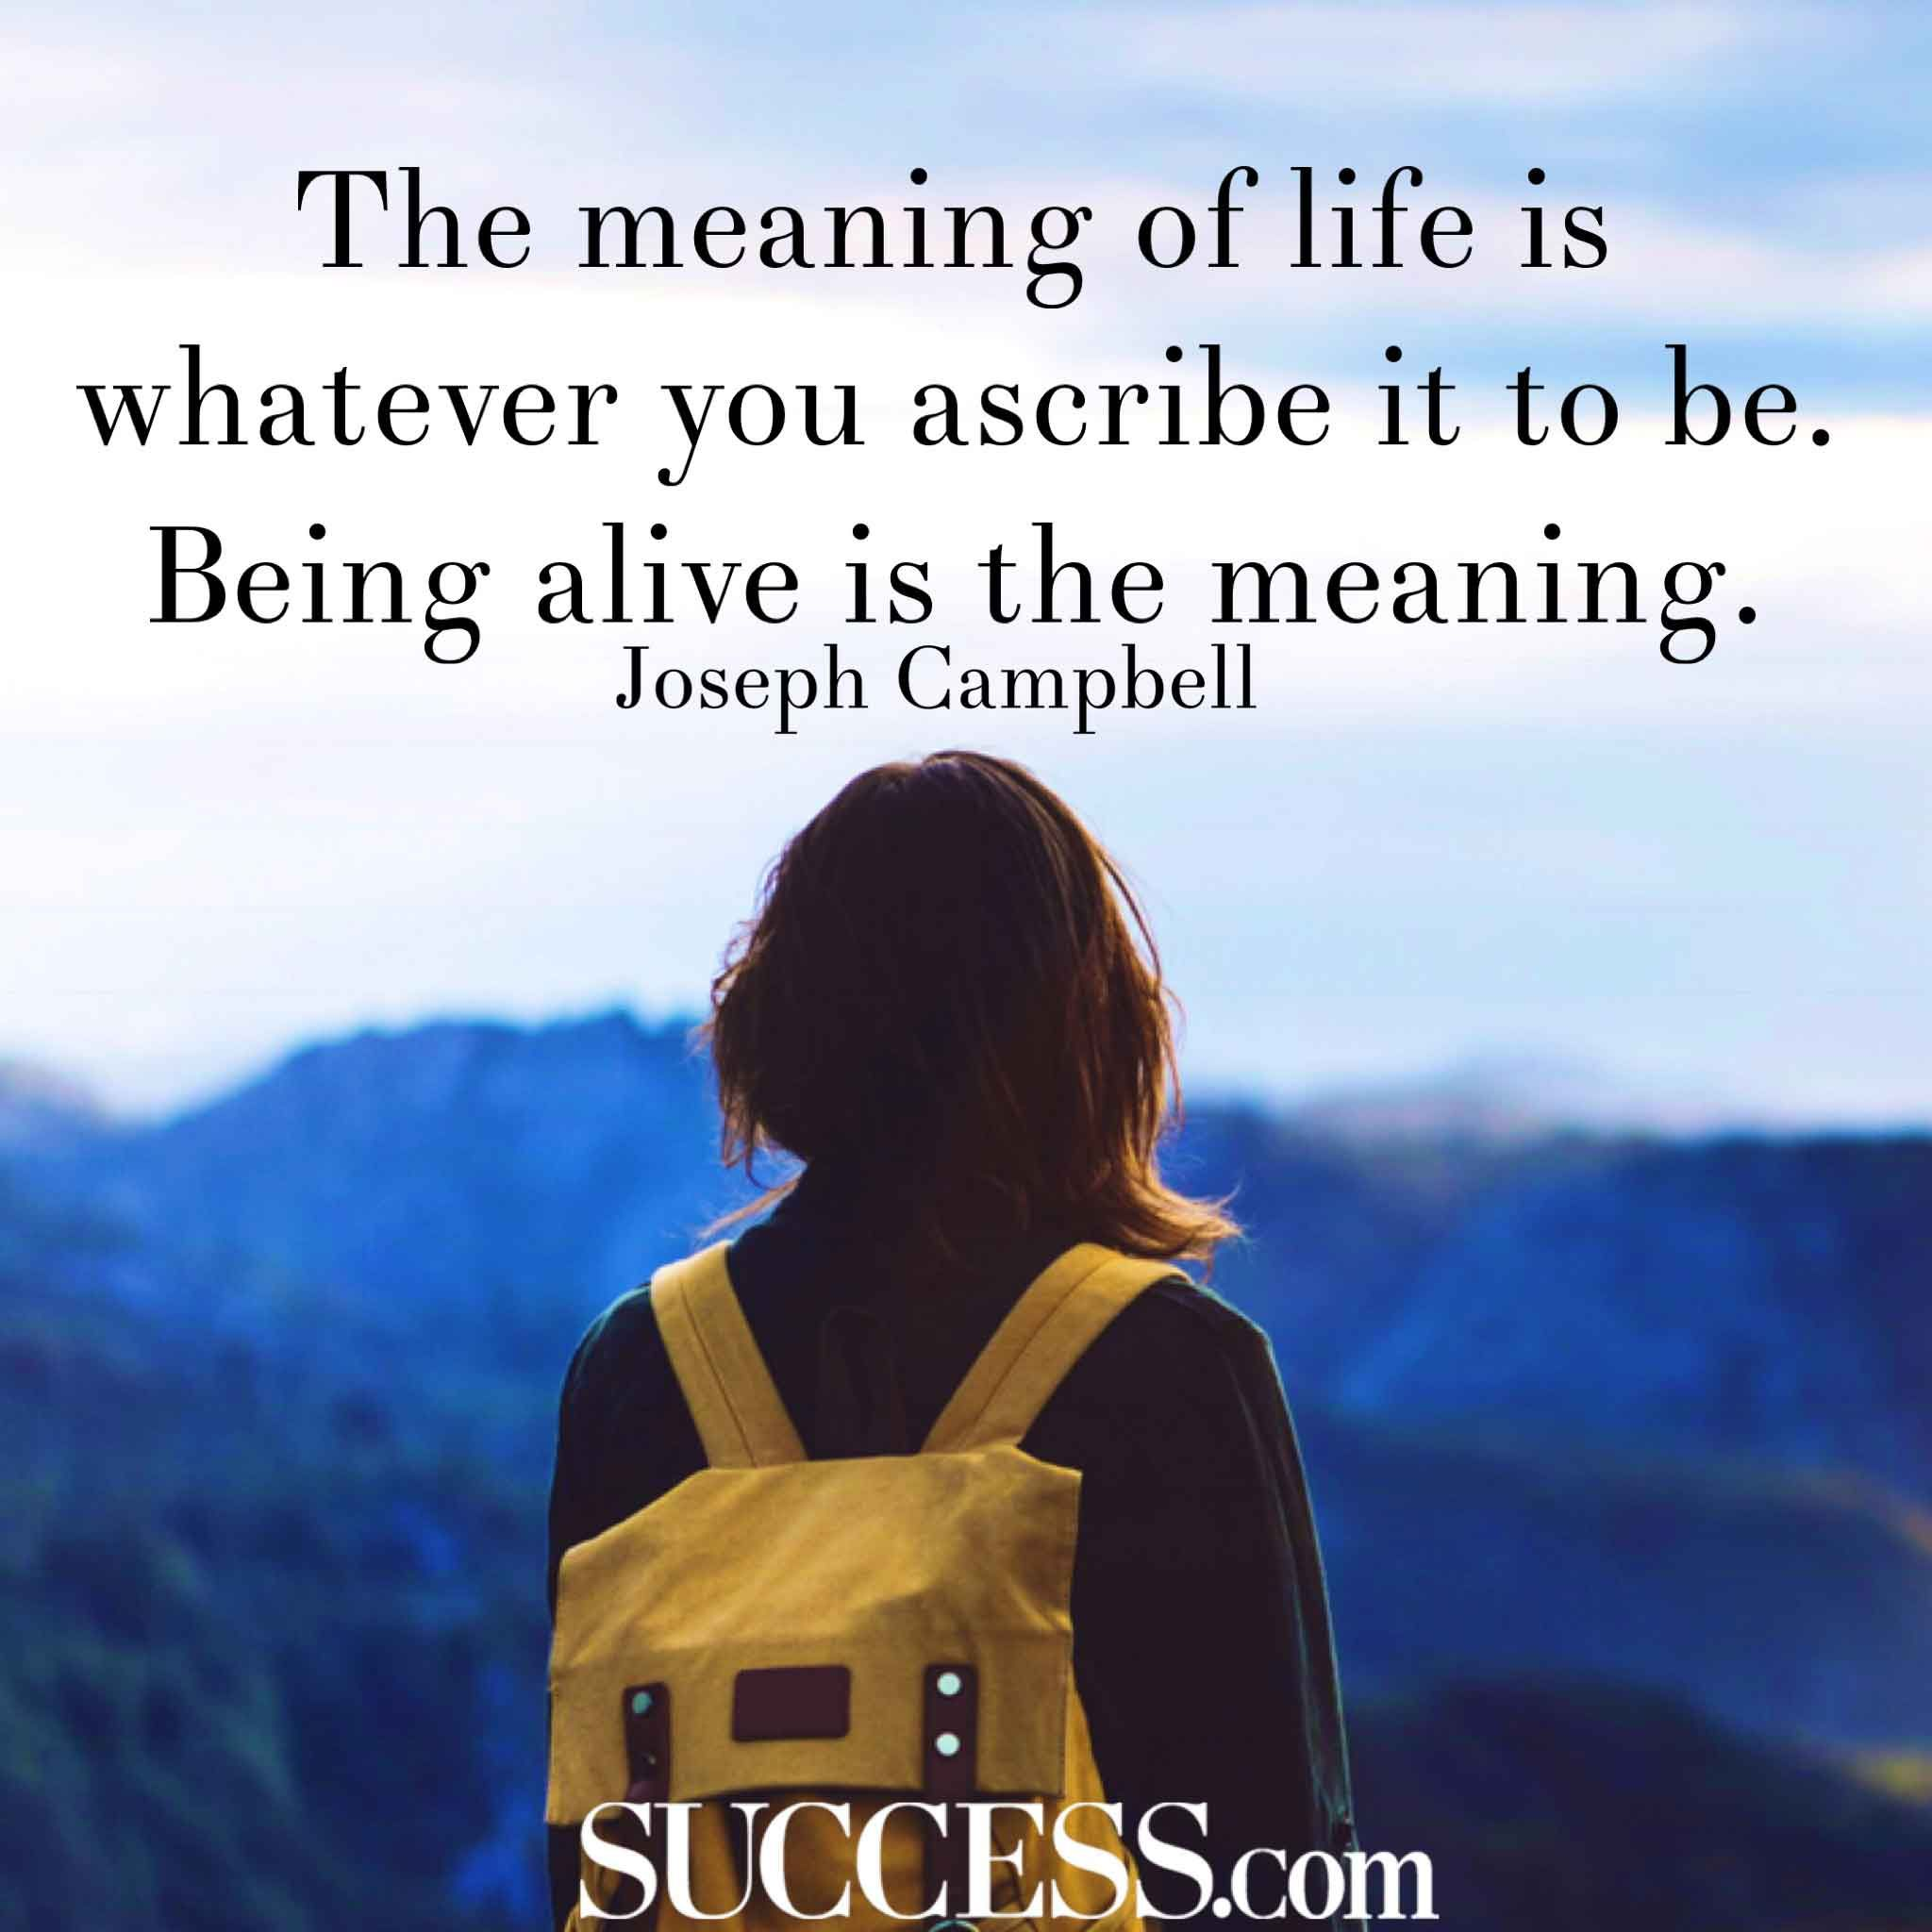 Meaning Of Life Quotes Mesmerizing The Meaning Of Life In 15 Wise Quotes  Success  Self Help